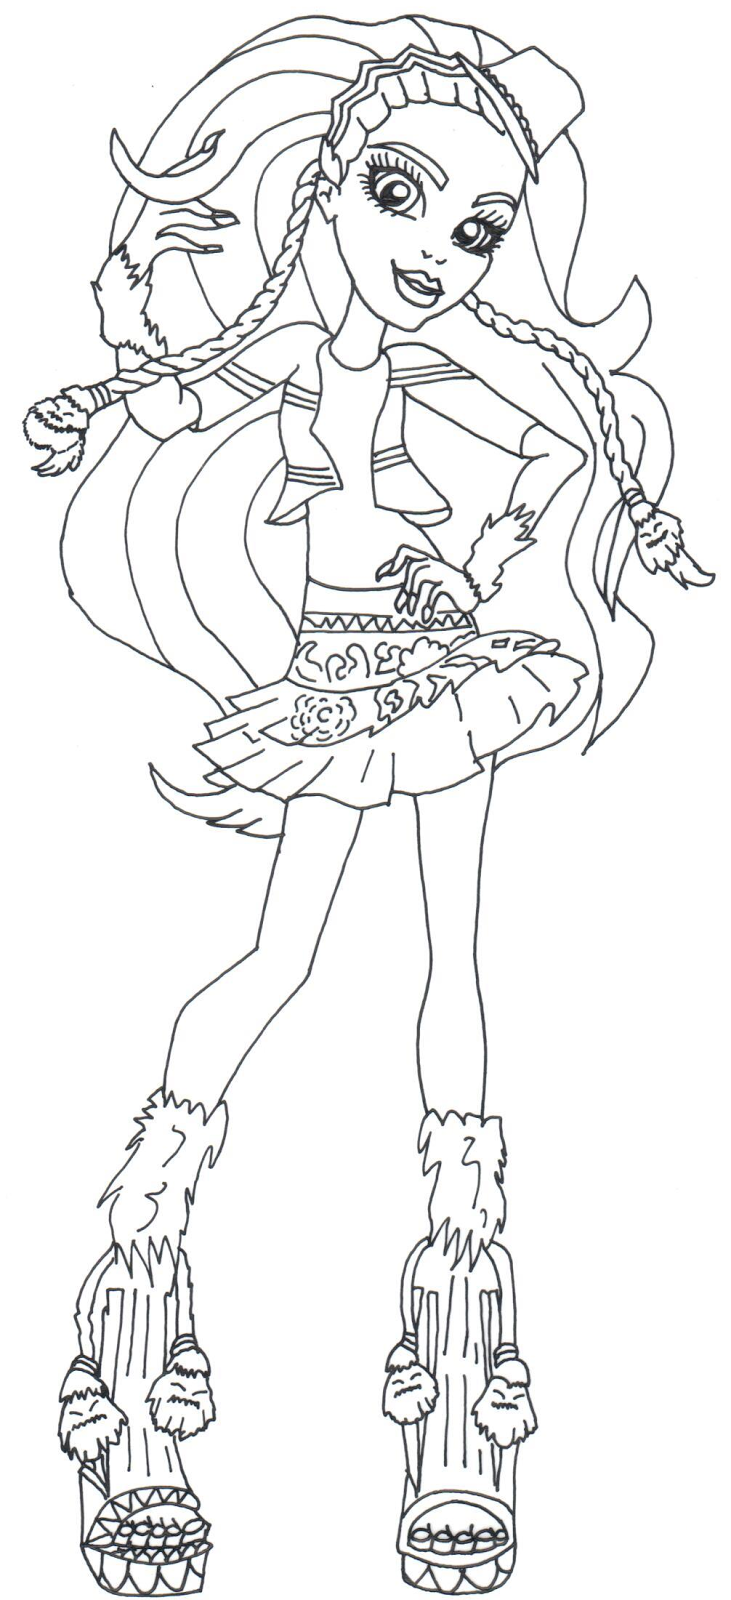 marisol coxi monster high coloring pages png 731 1600 monster